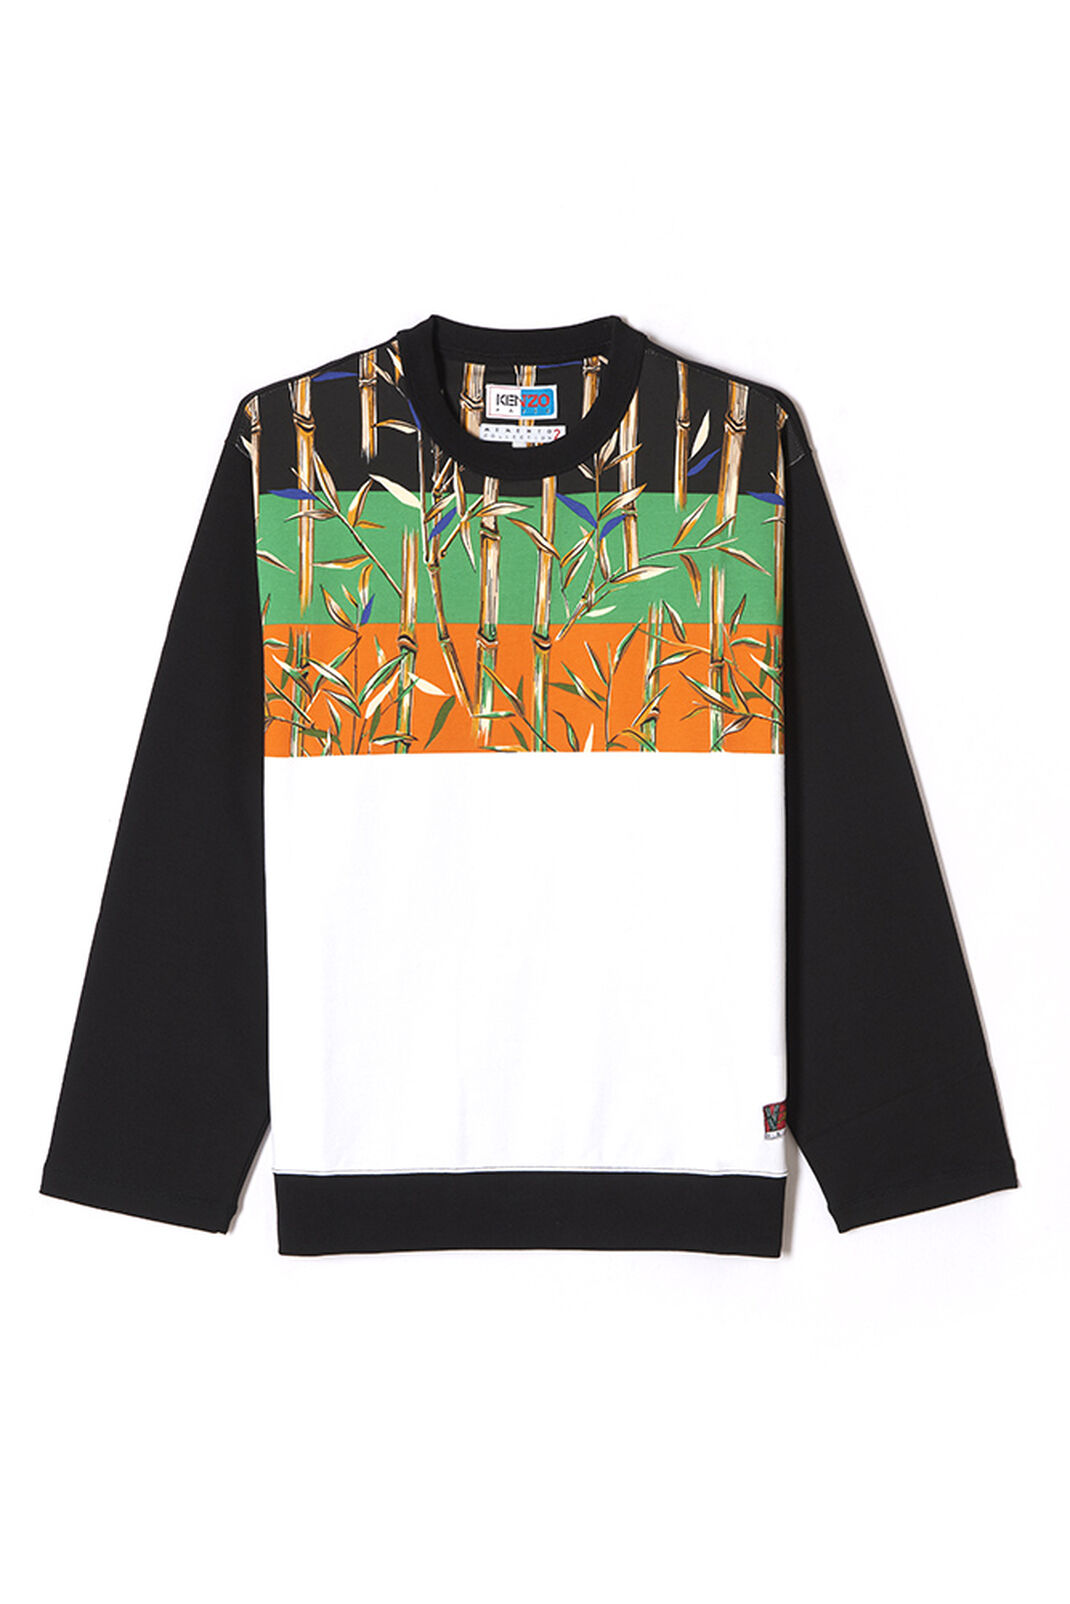 WHITE 'Bamboo Stripes' sweatshirt for men KENZO